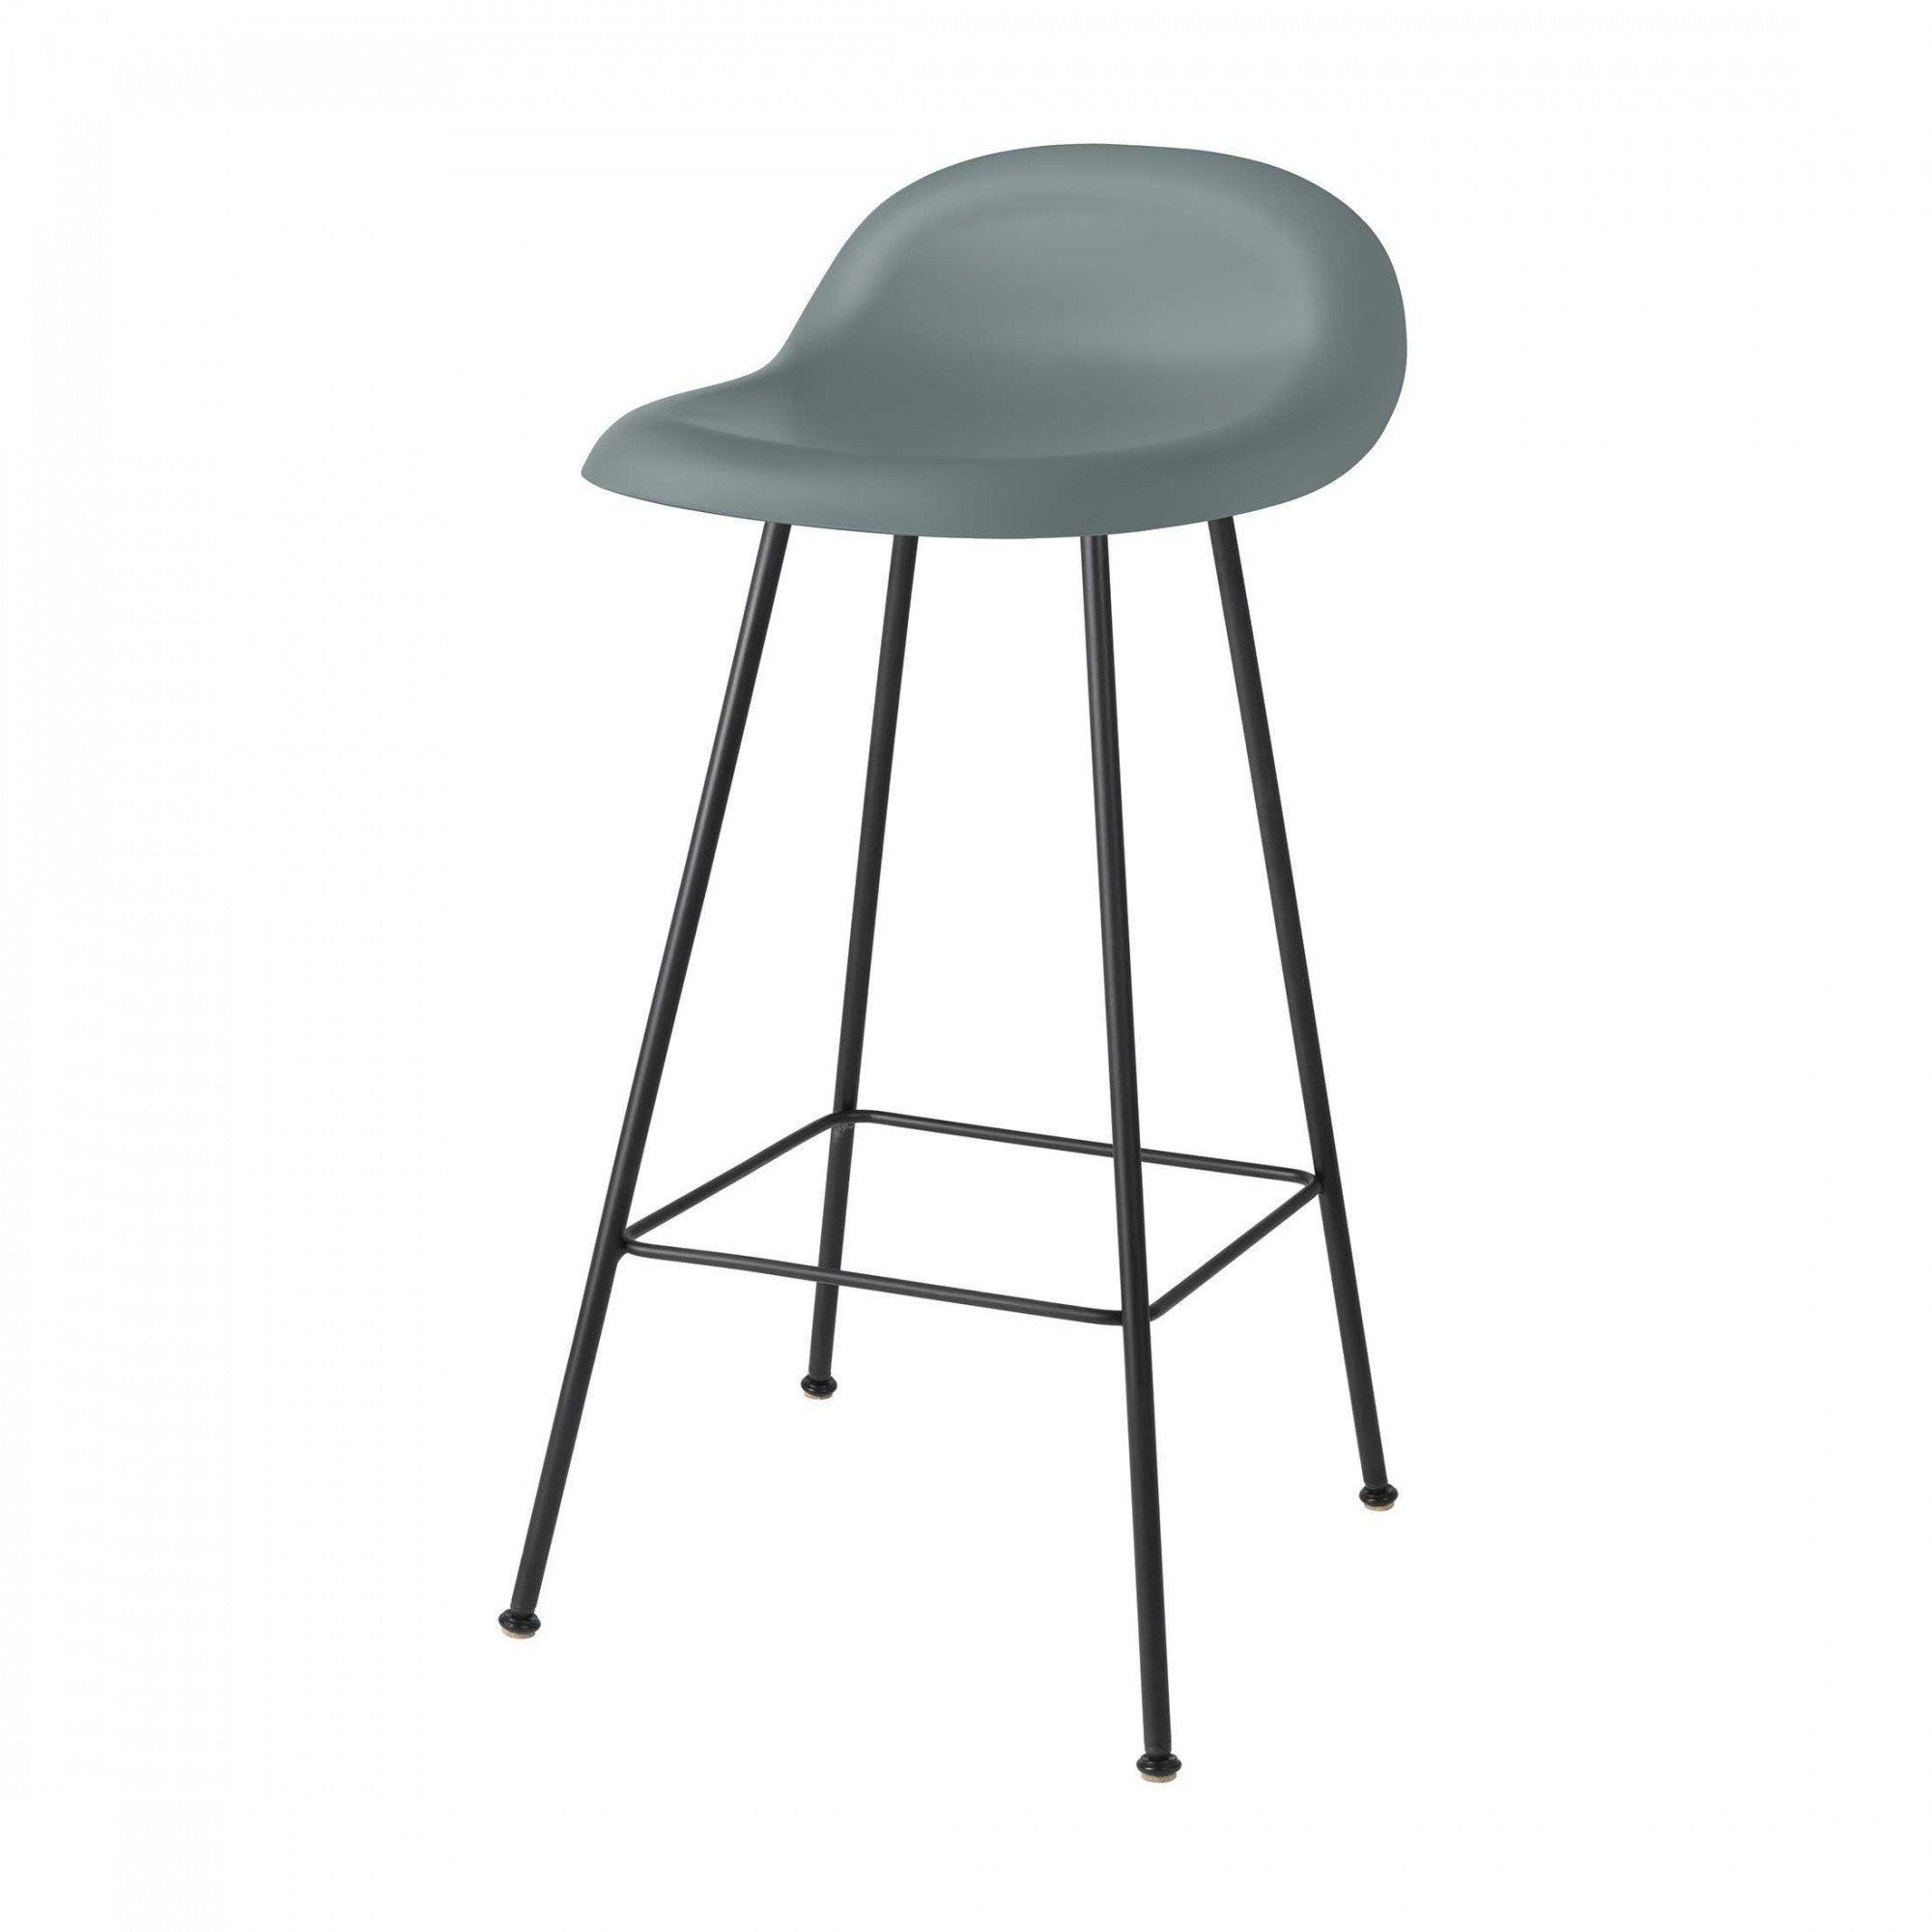 black chairs idea kitchen counter stools bar back wooden your contemporary stool furniture for ikea ikeawith sale